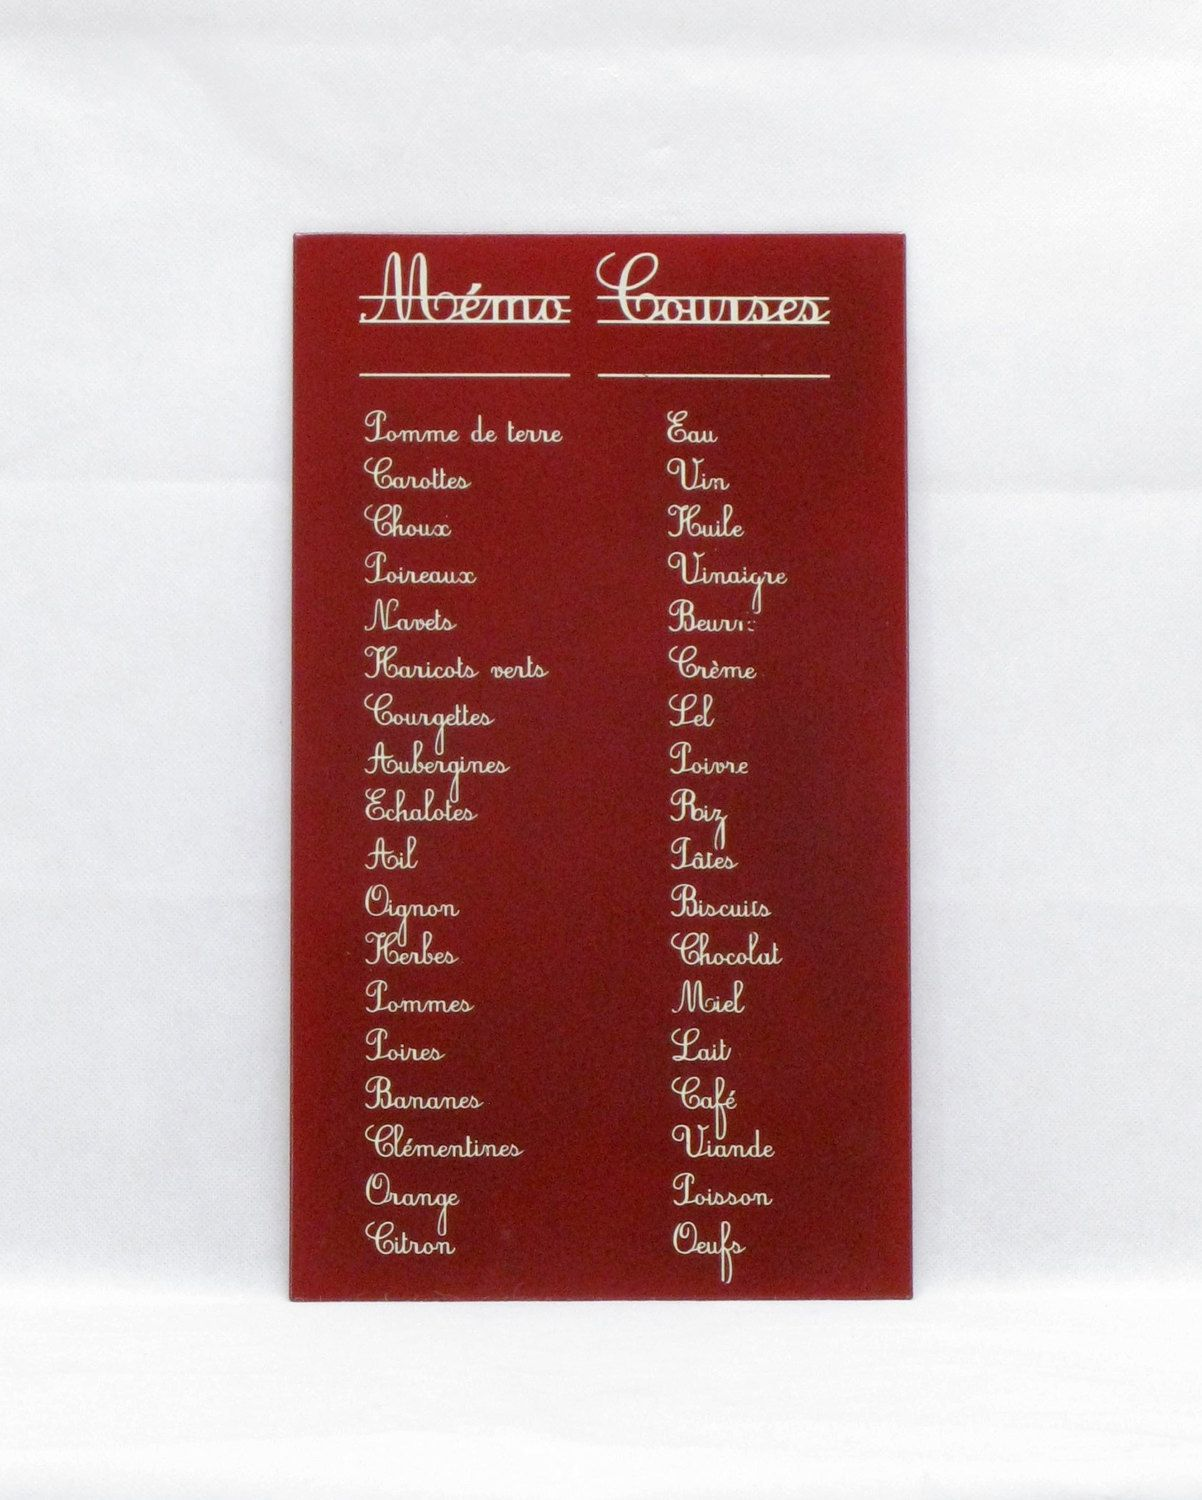 3ce7af3ed0622 French Shopping List Memo, French Metal Shopping List Memo, Wall Hanging  Shopping List Memo - Vintage French Shopping Memo (4330) - pinned by  pin4etsy.com